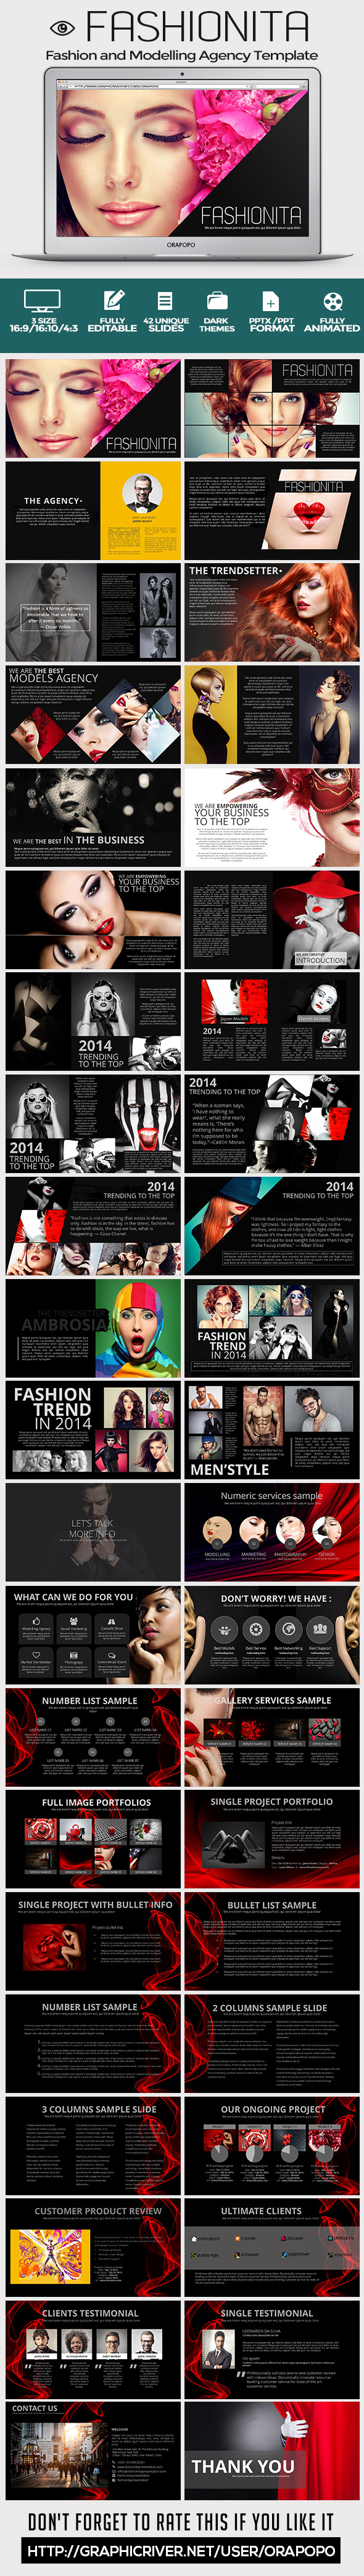 Fashionita Powerpoint Template - Creative PowerPoint Templates